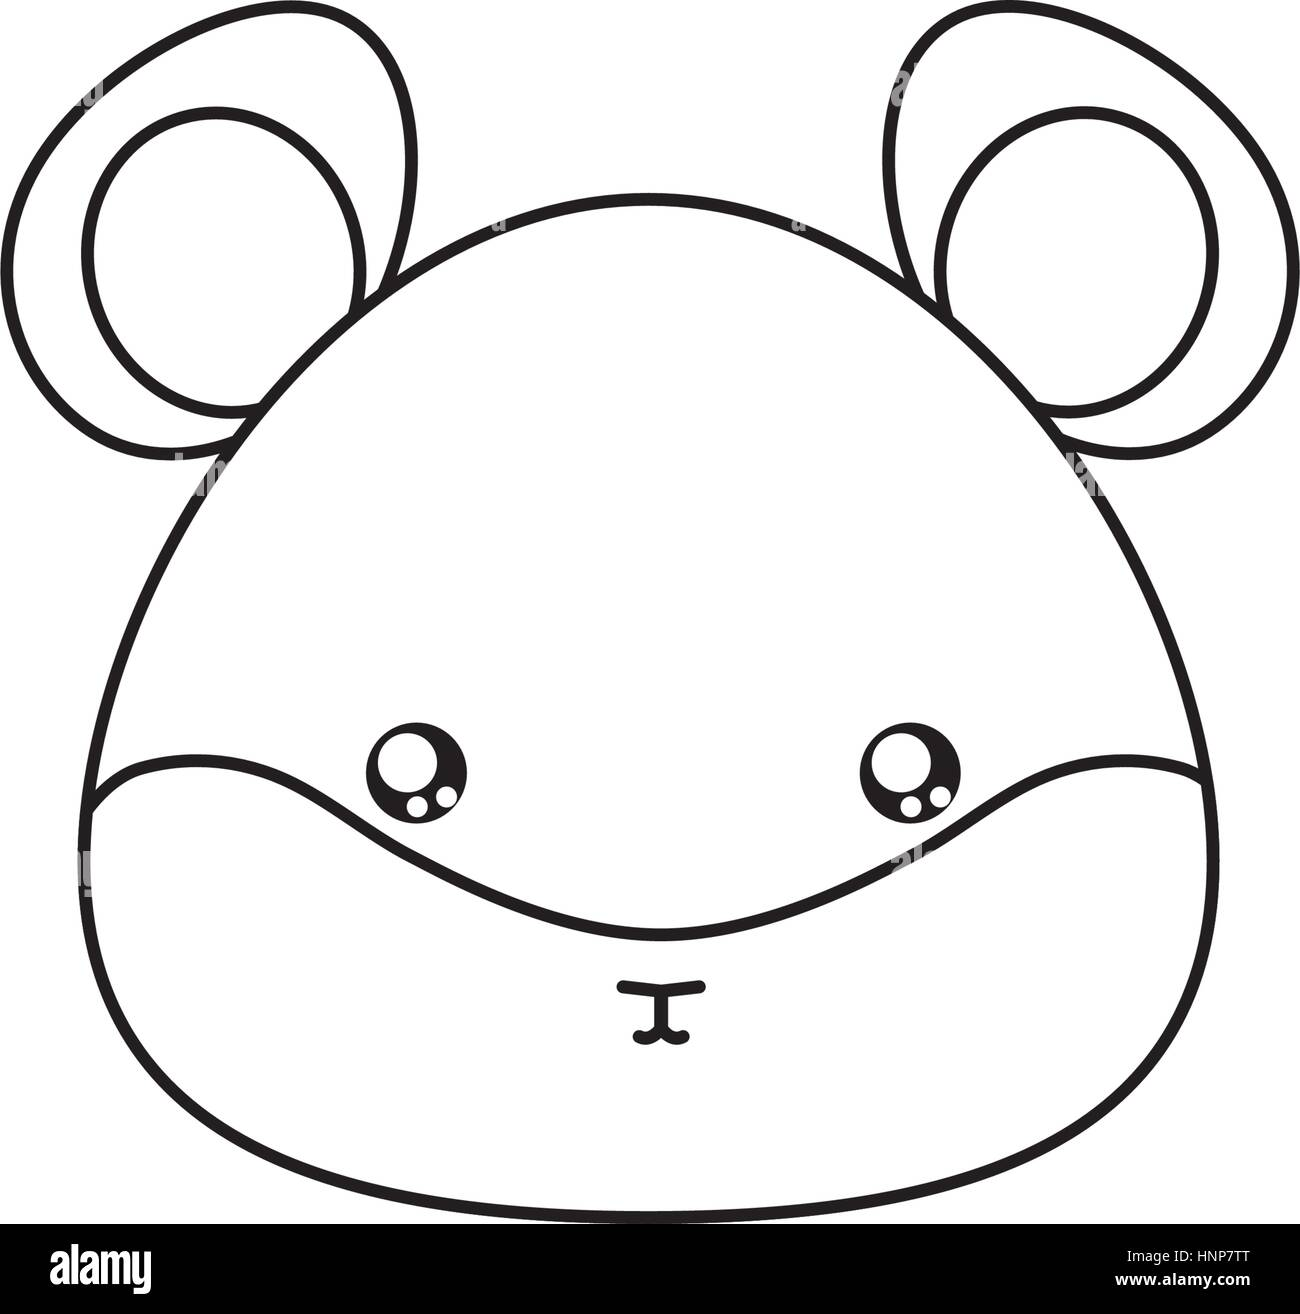 Hamster Drawing Face - Stock Vector